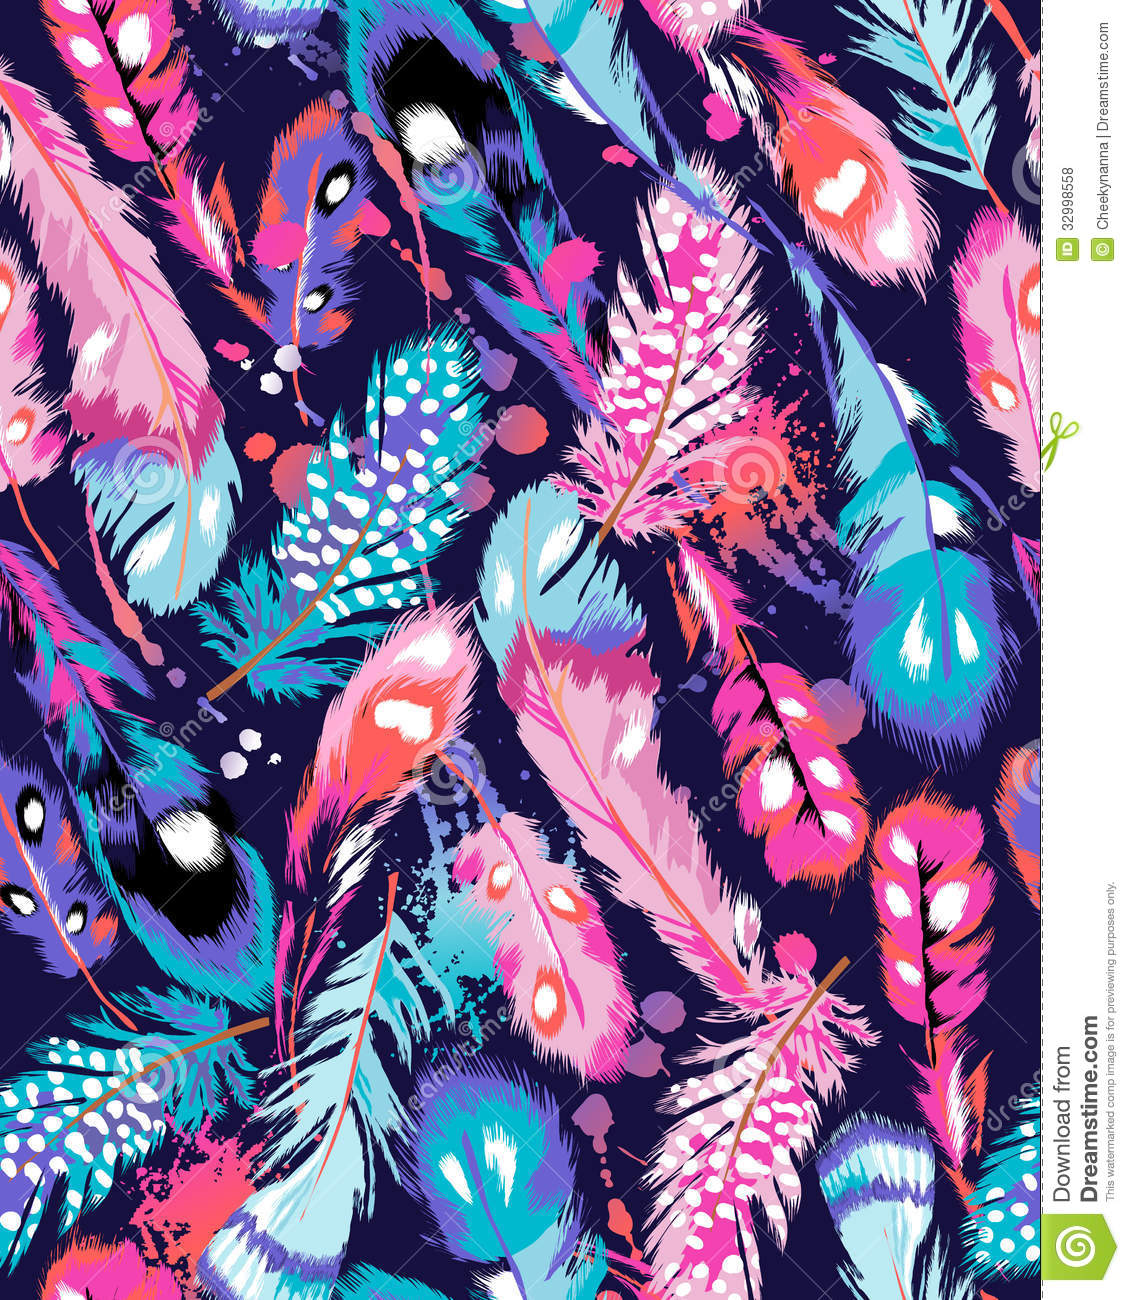 Neon Animal Print Wallpaper Colorful Feather Print Stock Vector Illustration Of Light